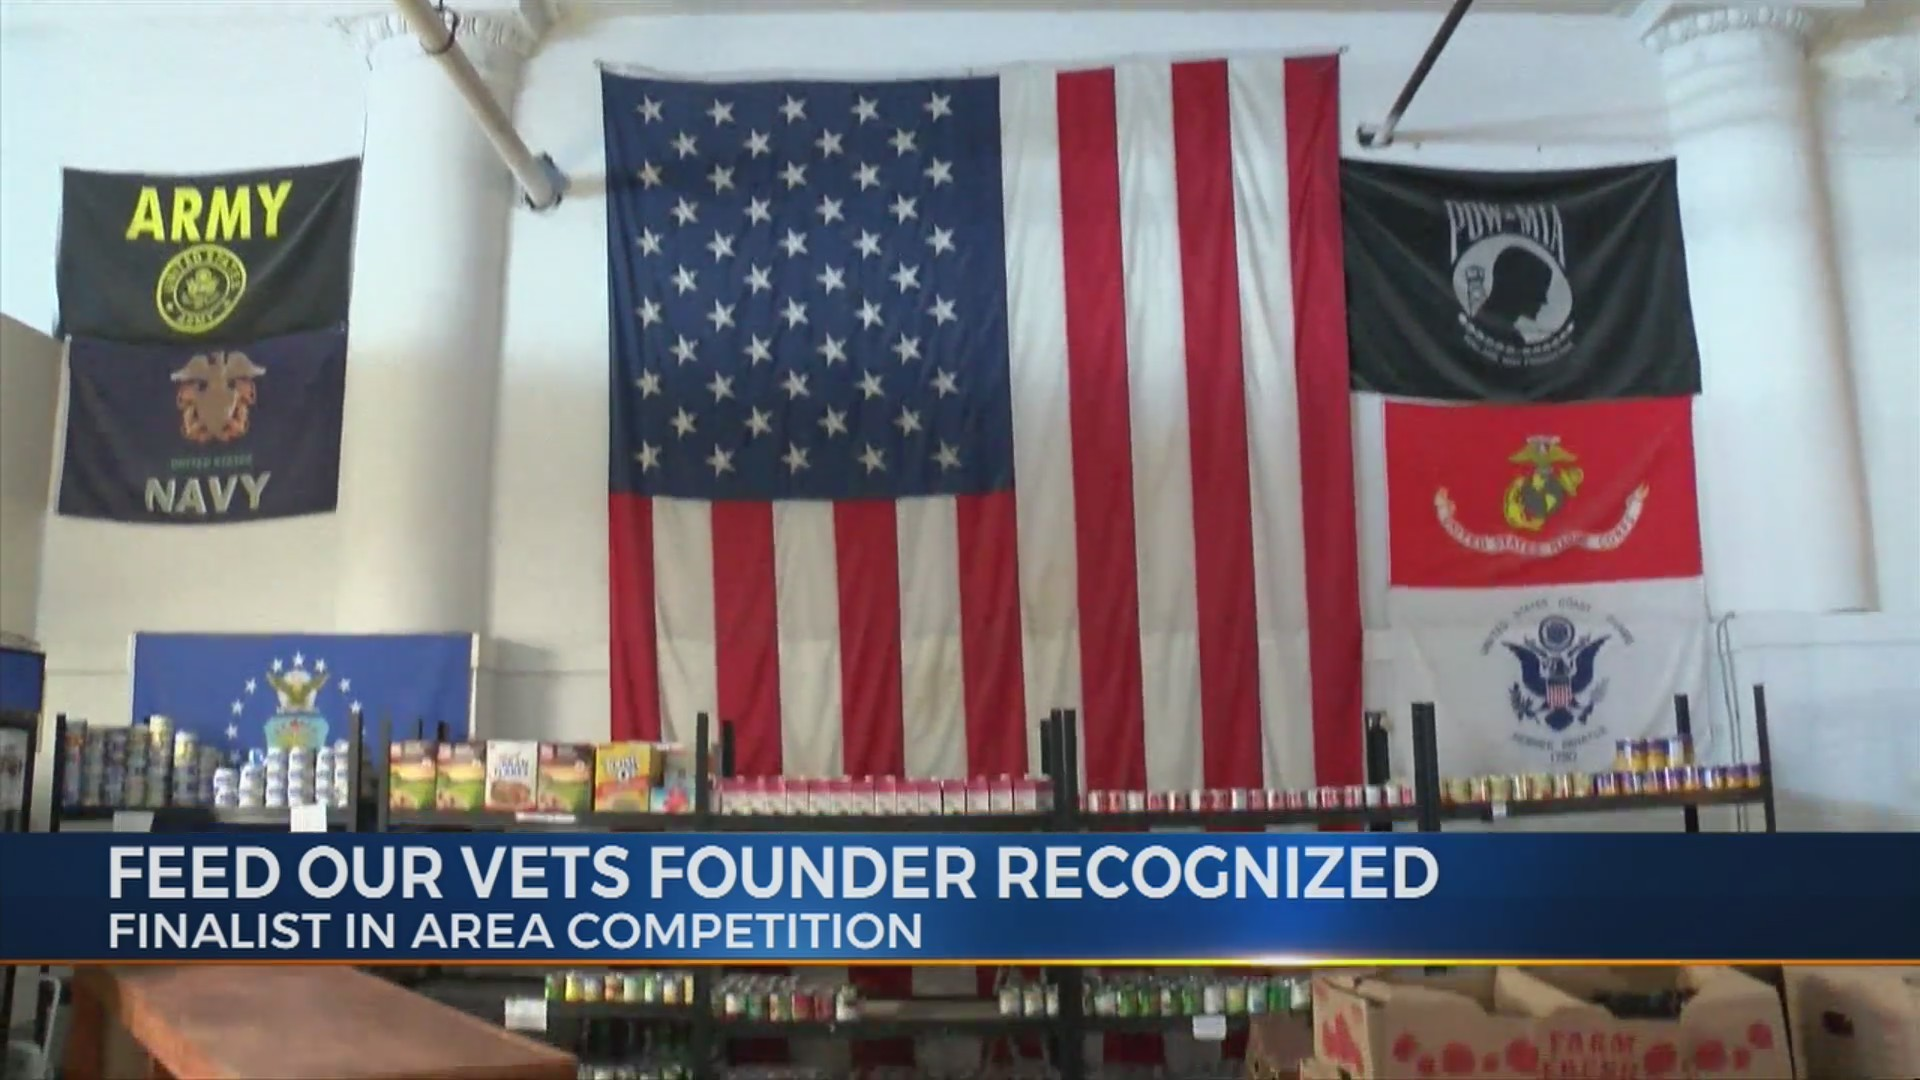 Feed Our Vets founder recognized